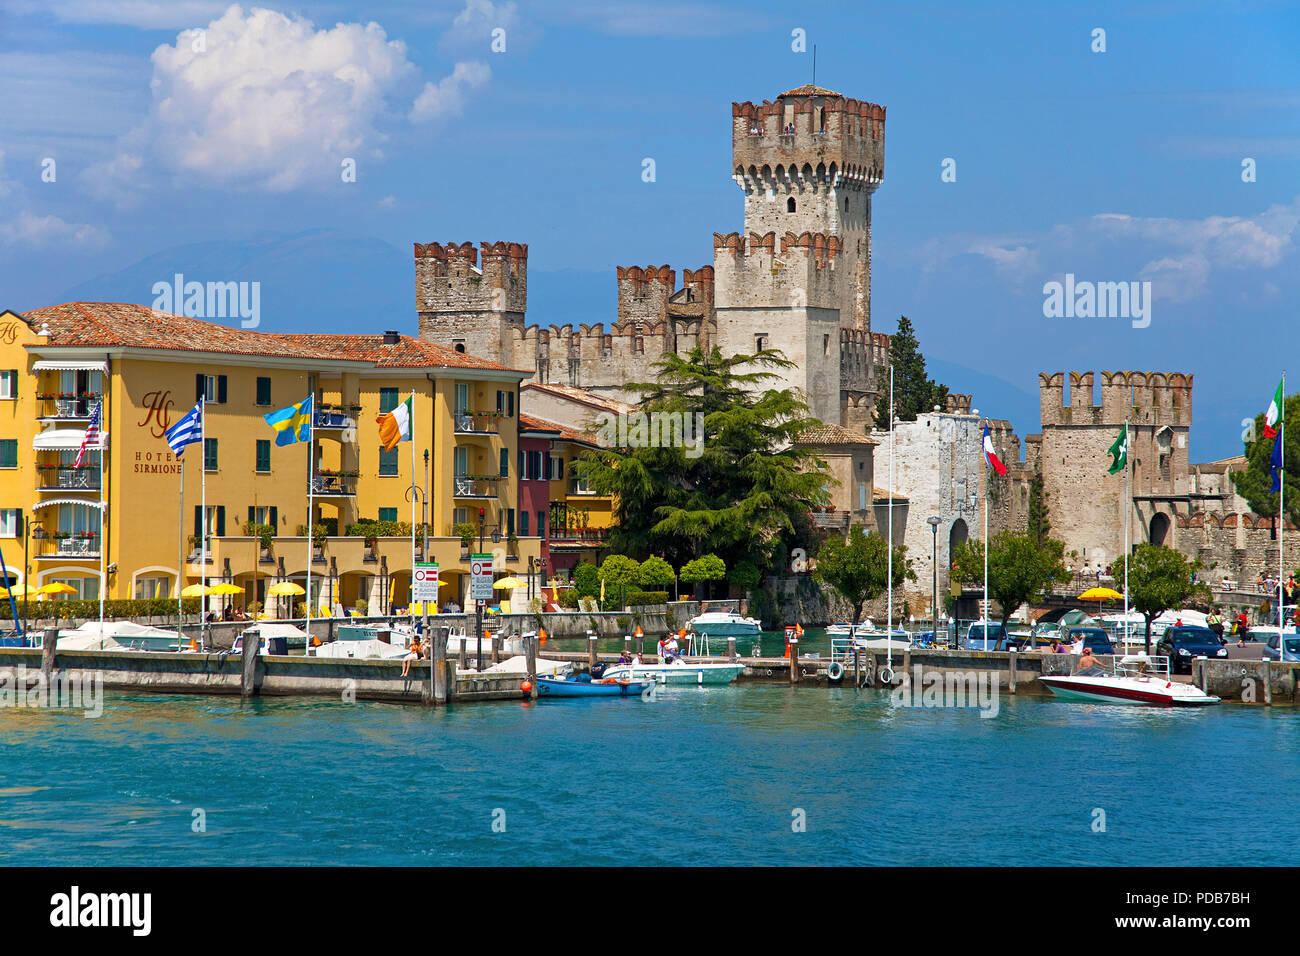 Harbour at Scaliger castle, landmark of Sirmione, Lake Garda, Lombardy, Italy - Stock Image